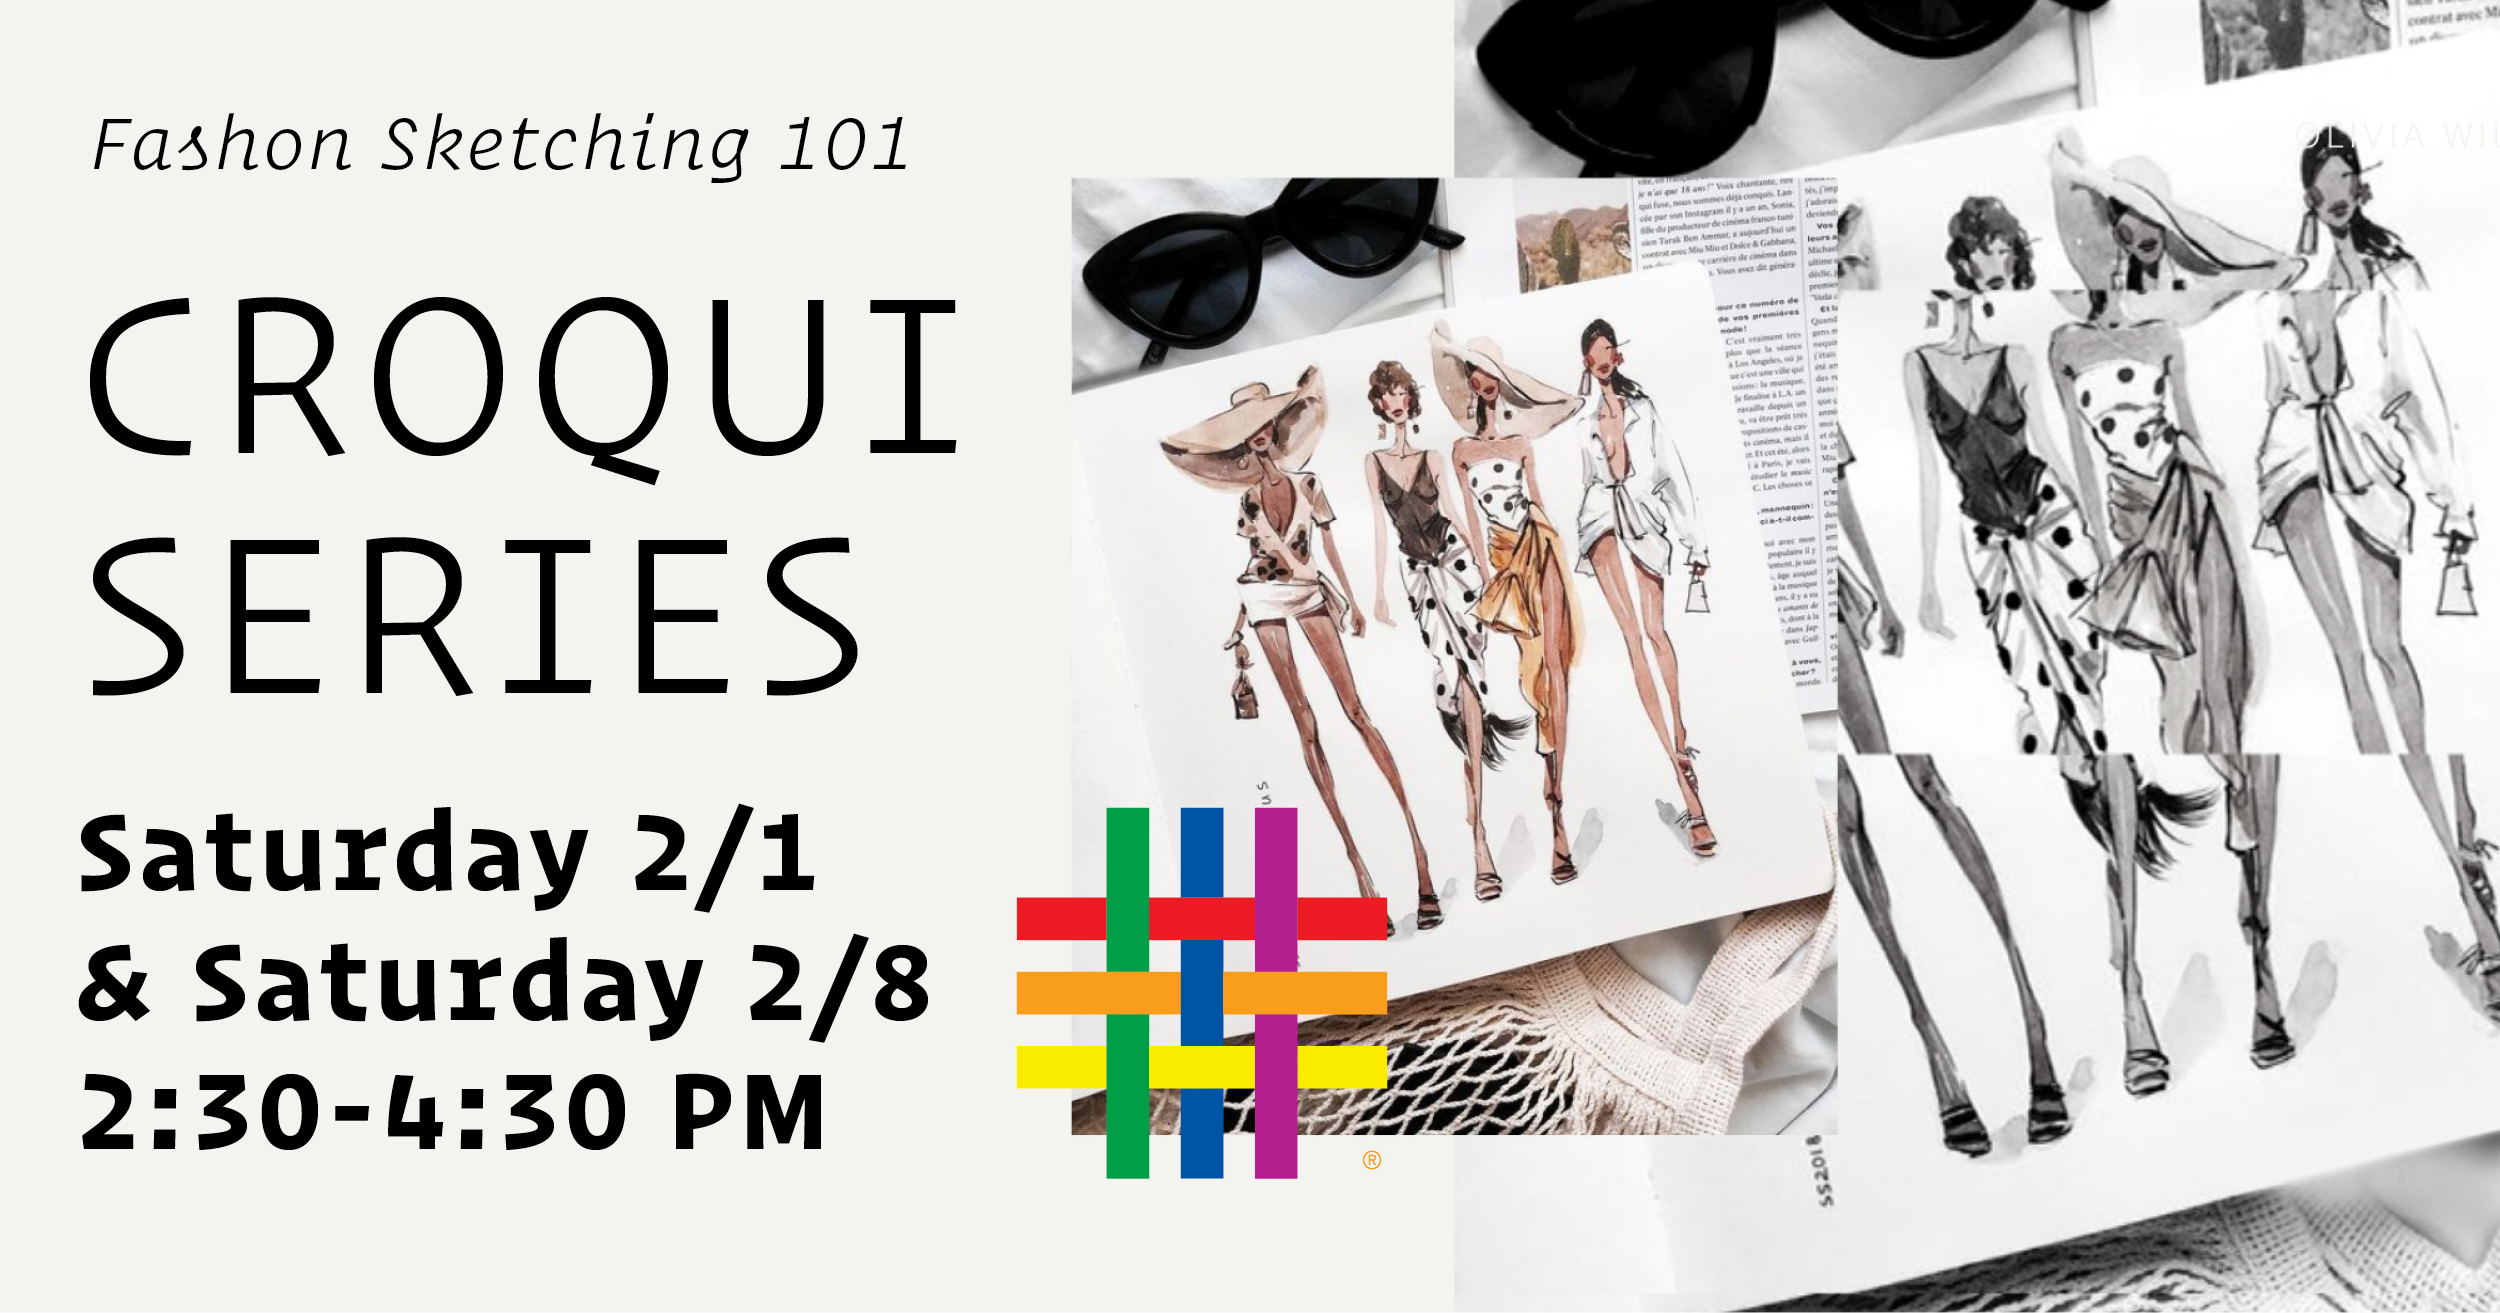 The Croqui Series: A Fashion Illustration Workshop at Brooklyn Community Pride Center